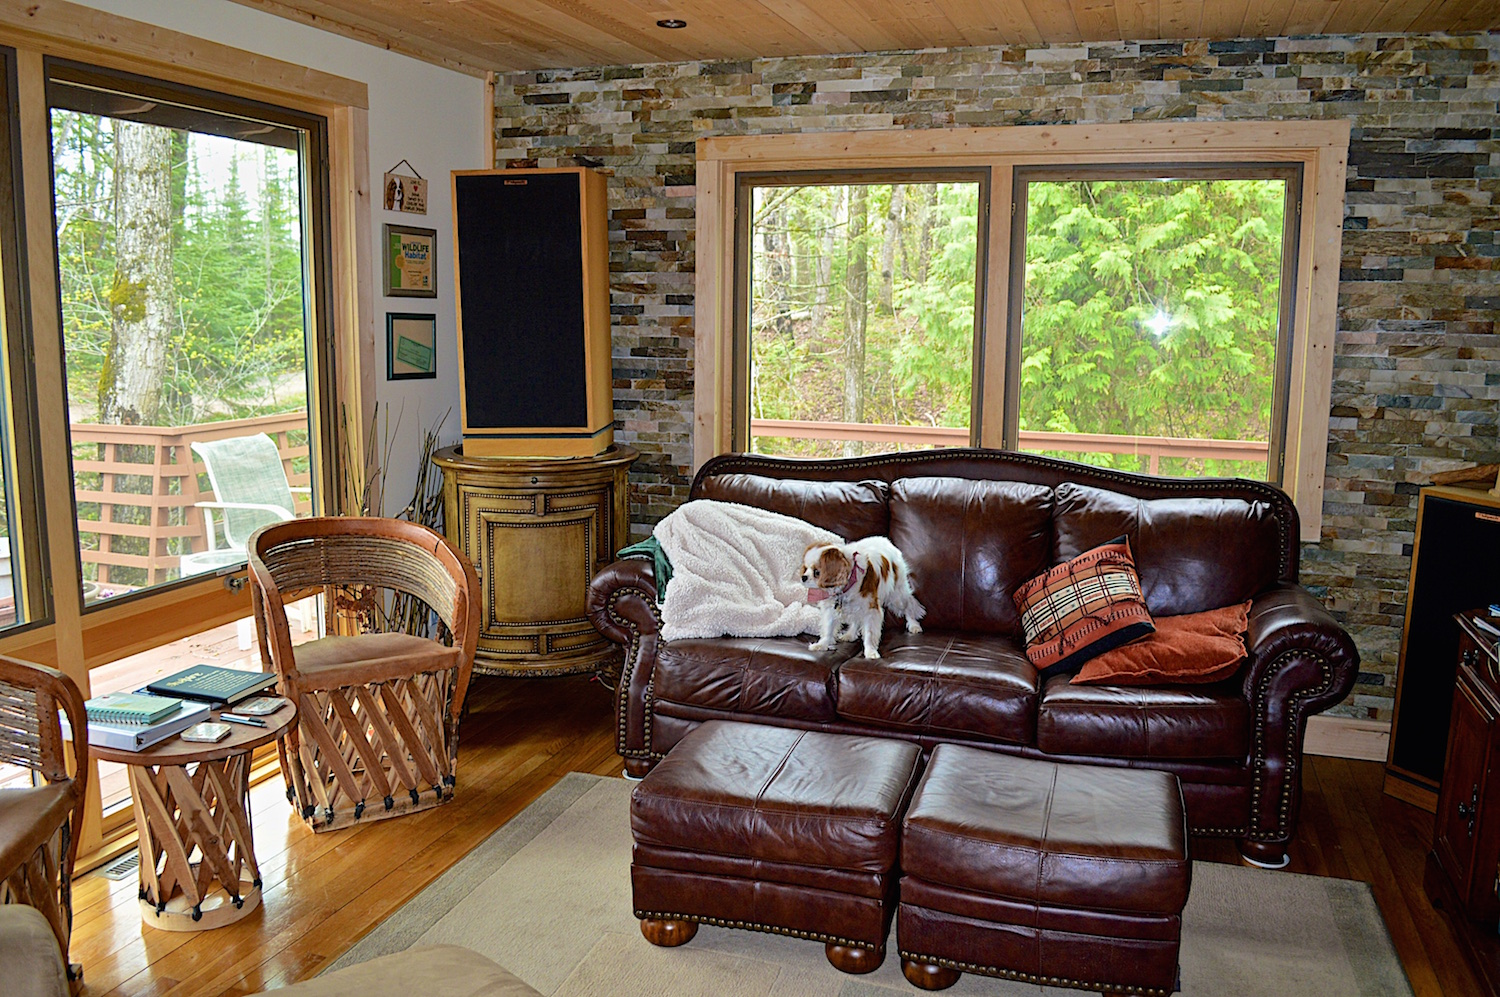 Large windows open the view to the outside.